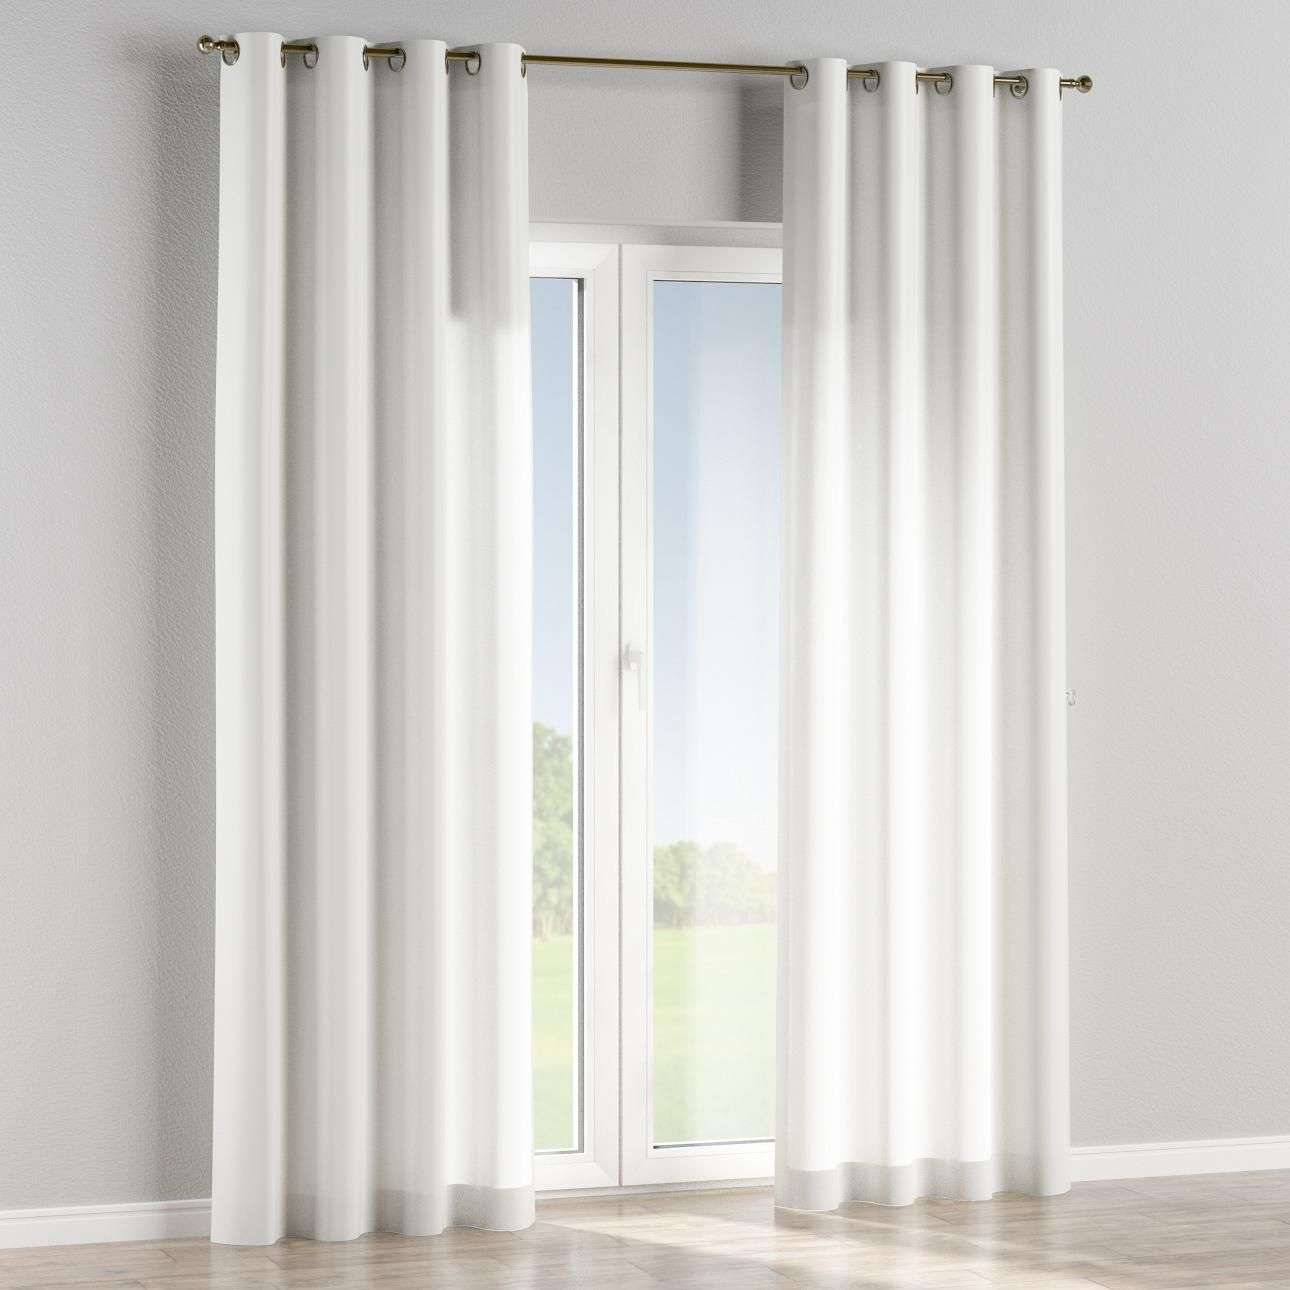 Eyelet lined curtains in collection Amelie , fabric: 136-75